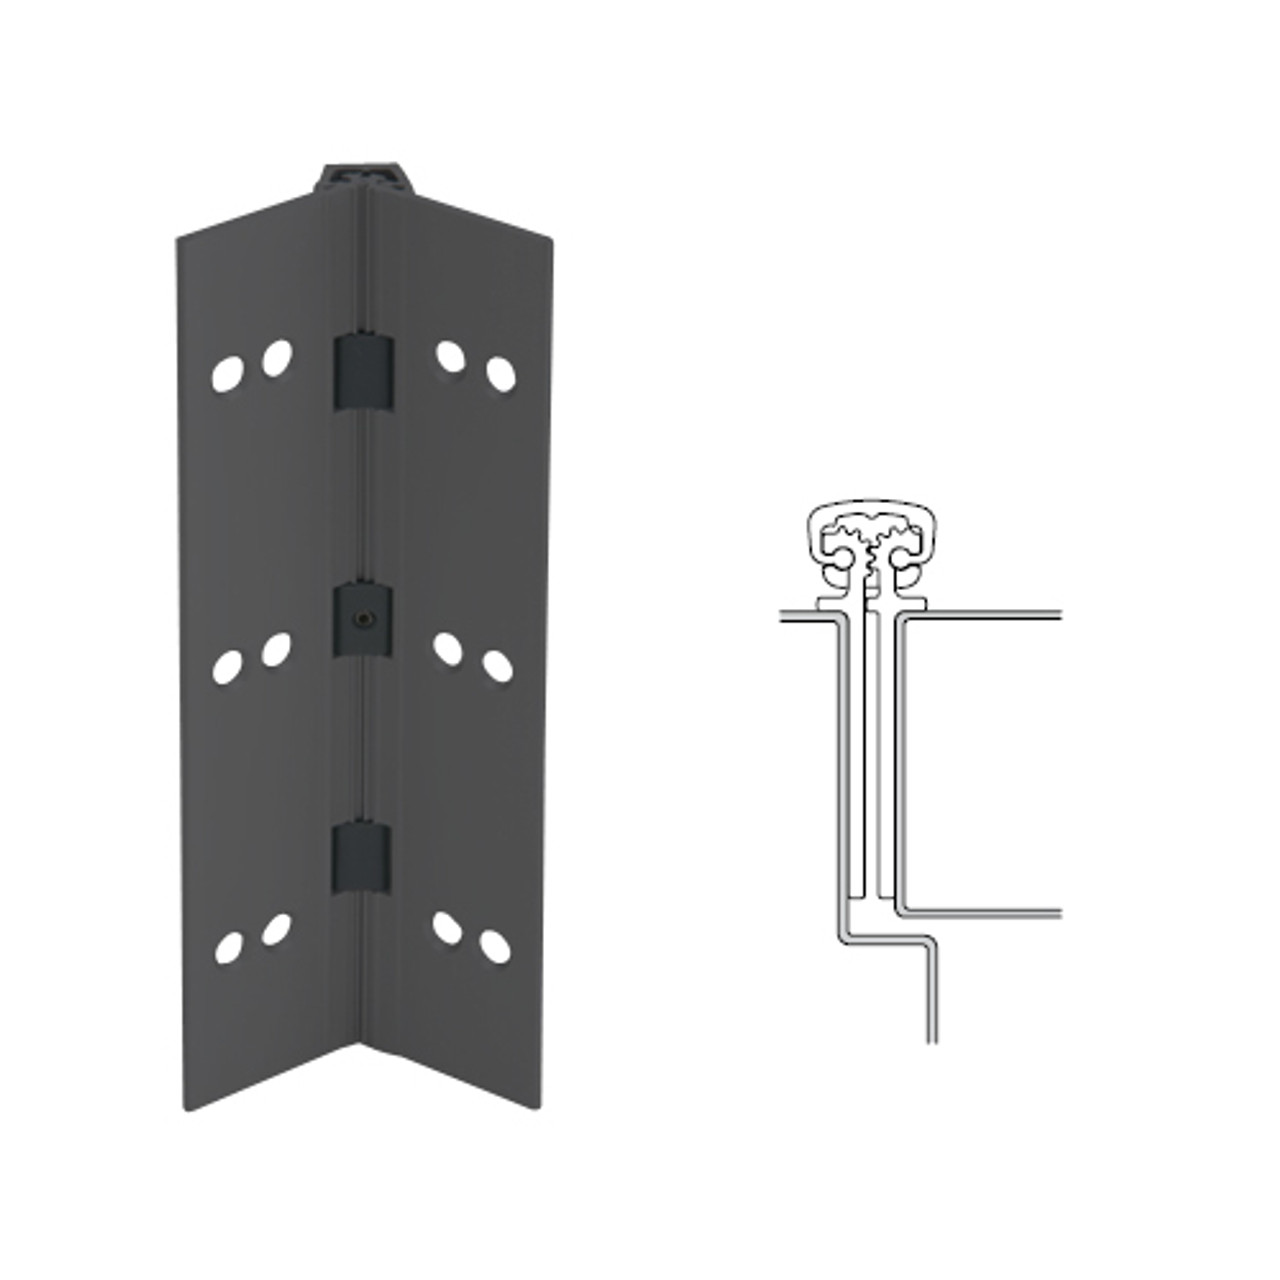 027XY-315AN-85-TEKWD IVES Full Mortise Continuous Geared Hinges with Wood Screws in Anodized Black